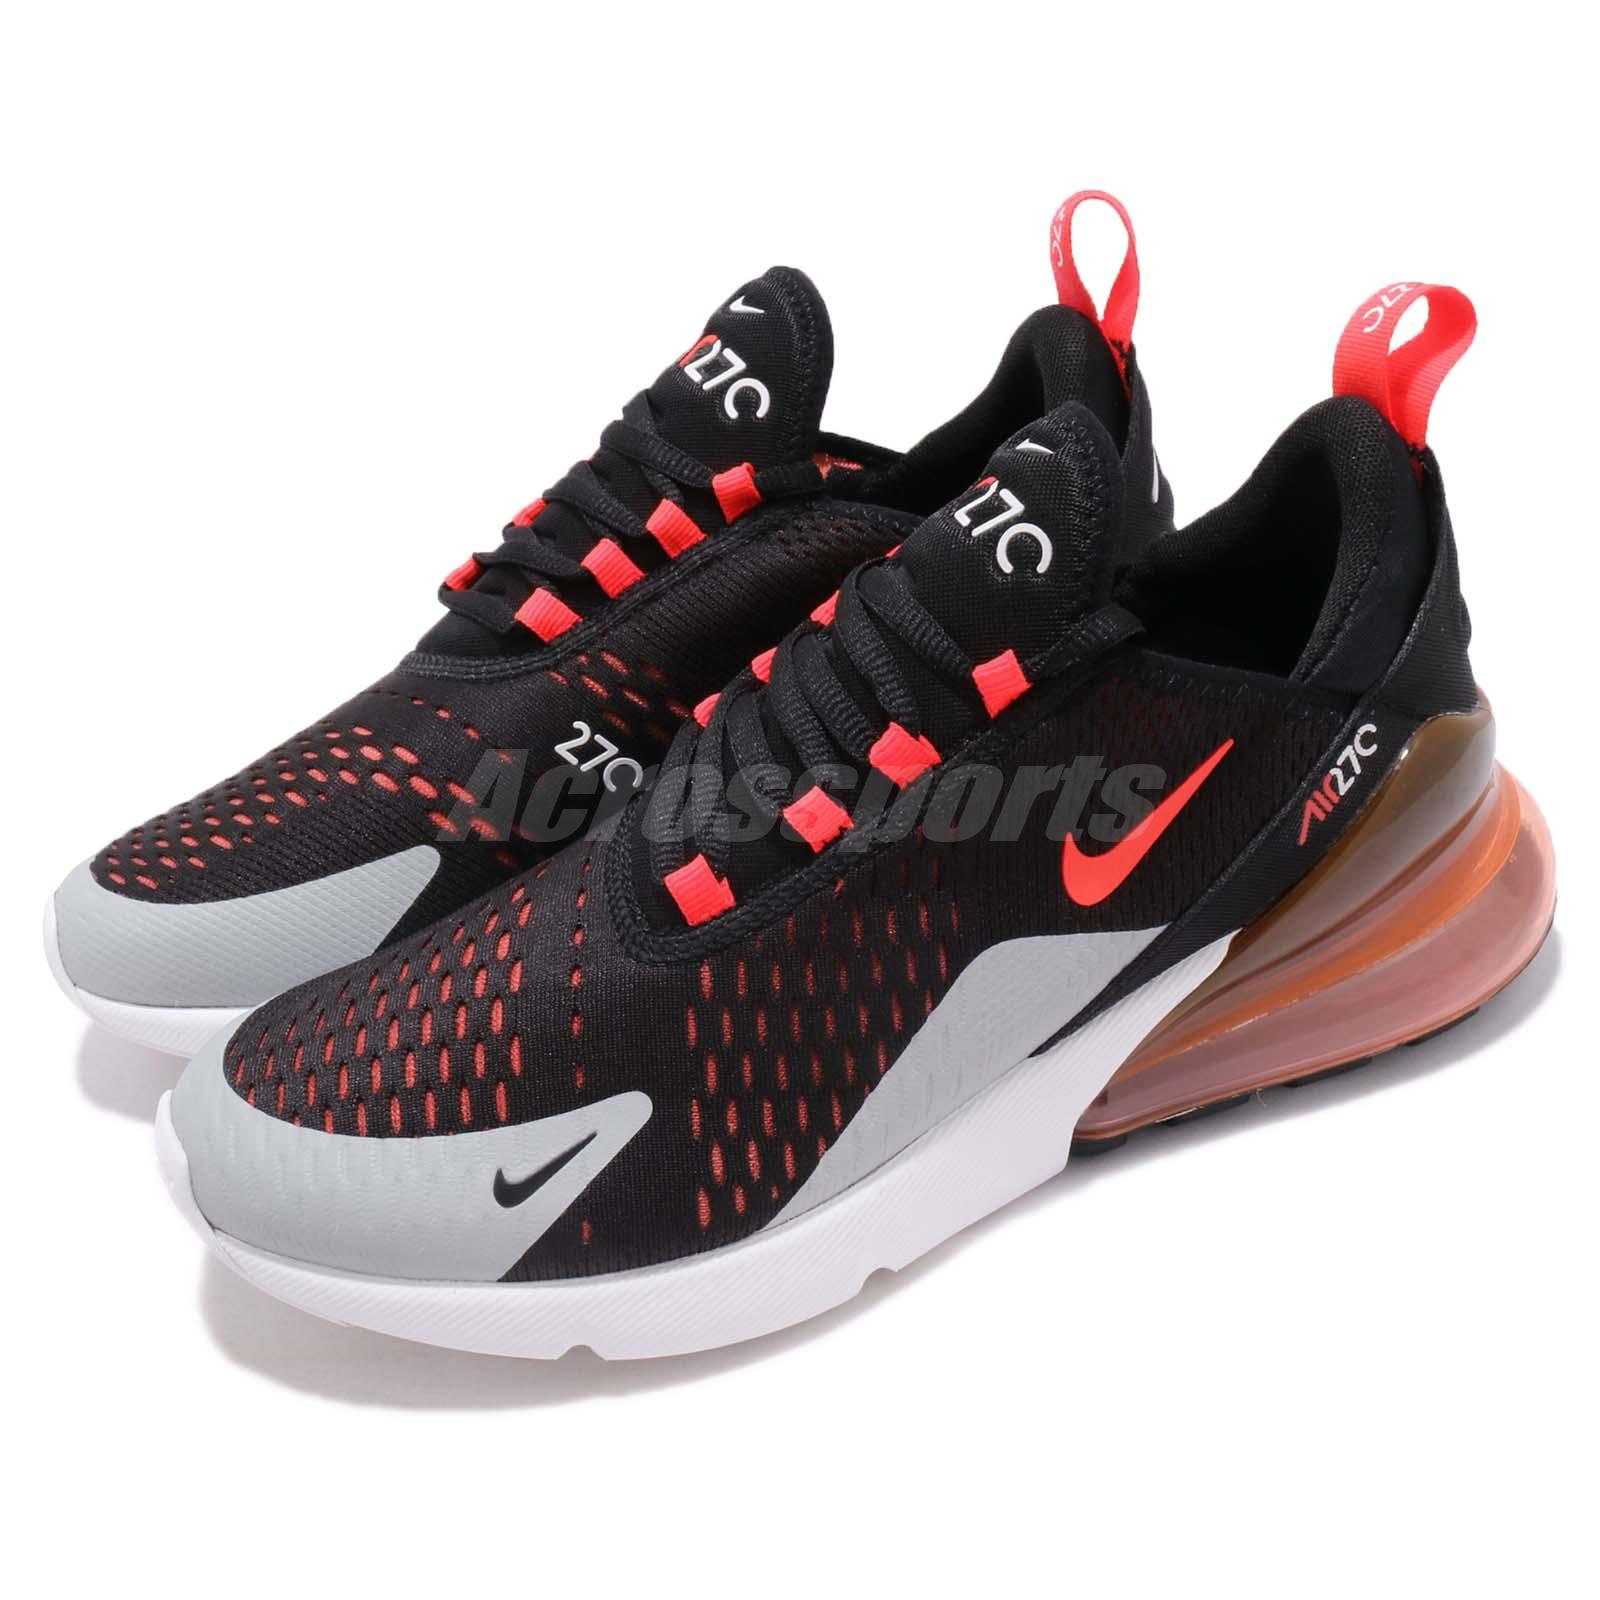 042a1c6d3705 Details about Nike Air Max 270 Bright Crimson Black Men Running Shoes  Sneakers AH8050-015